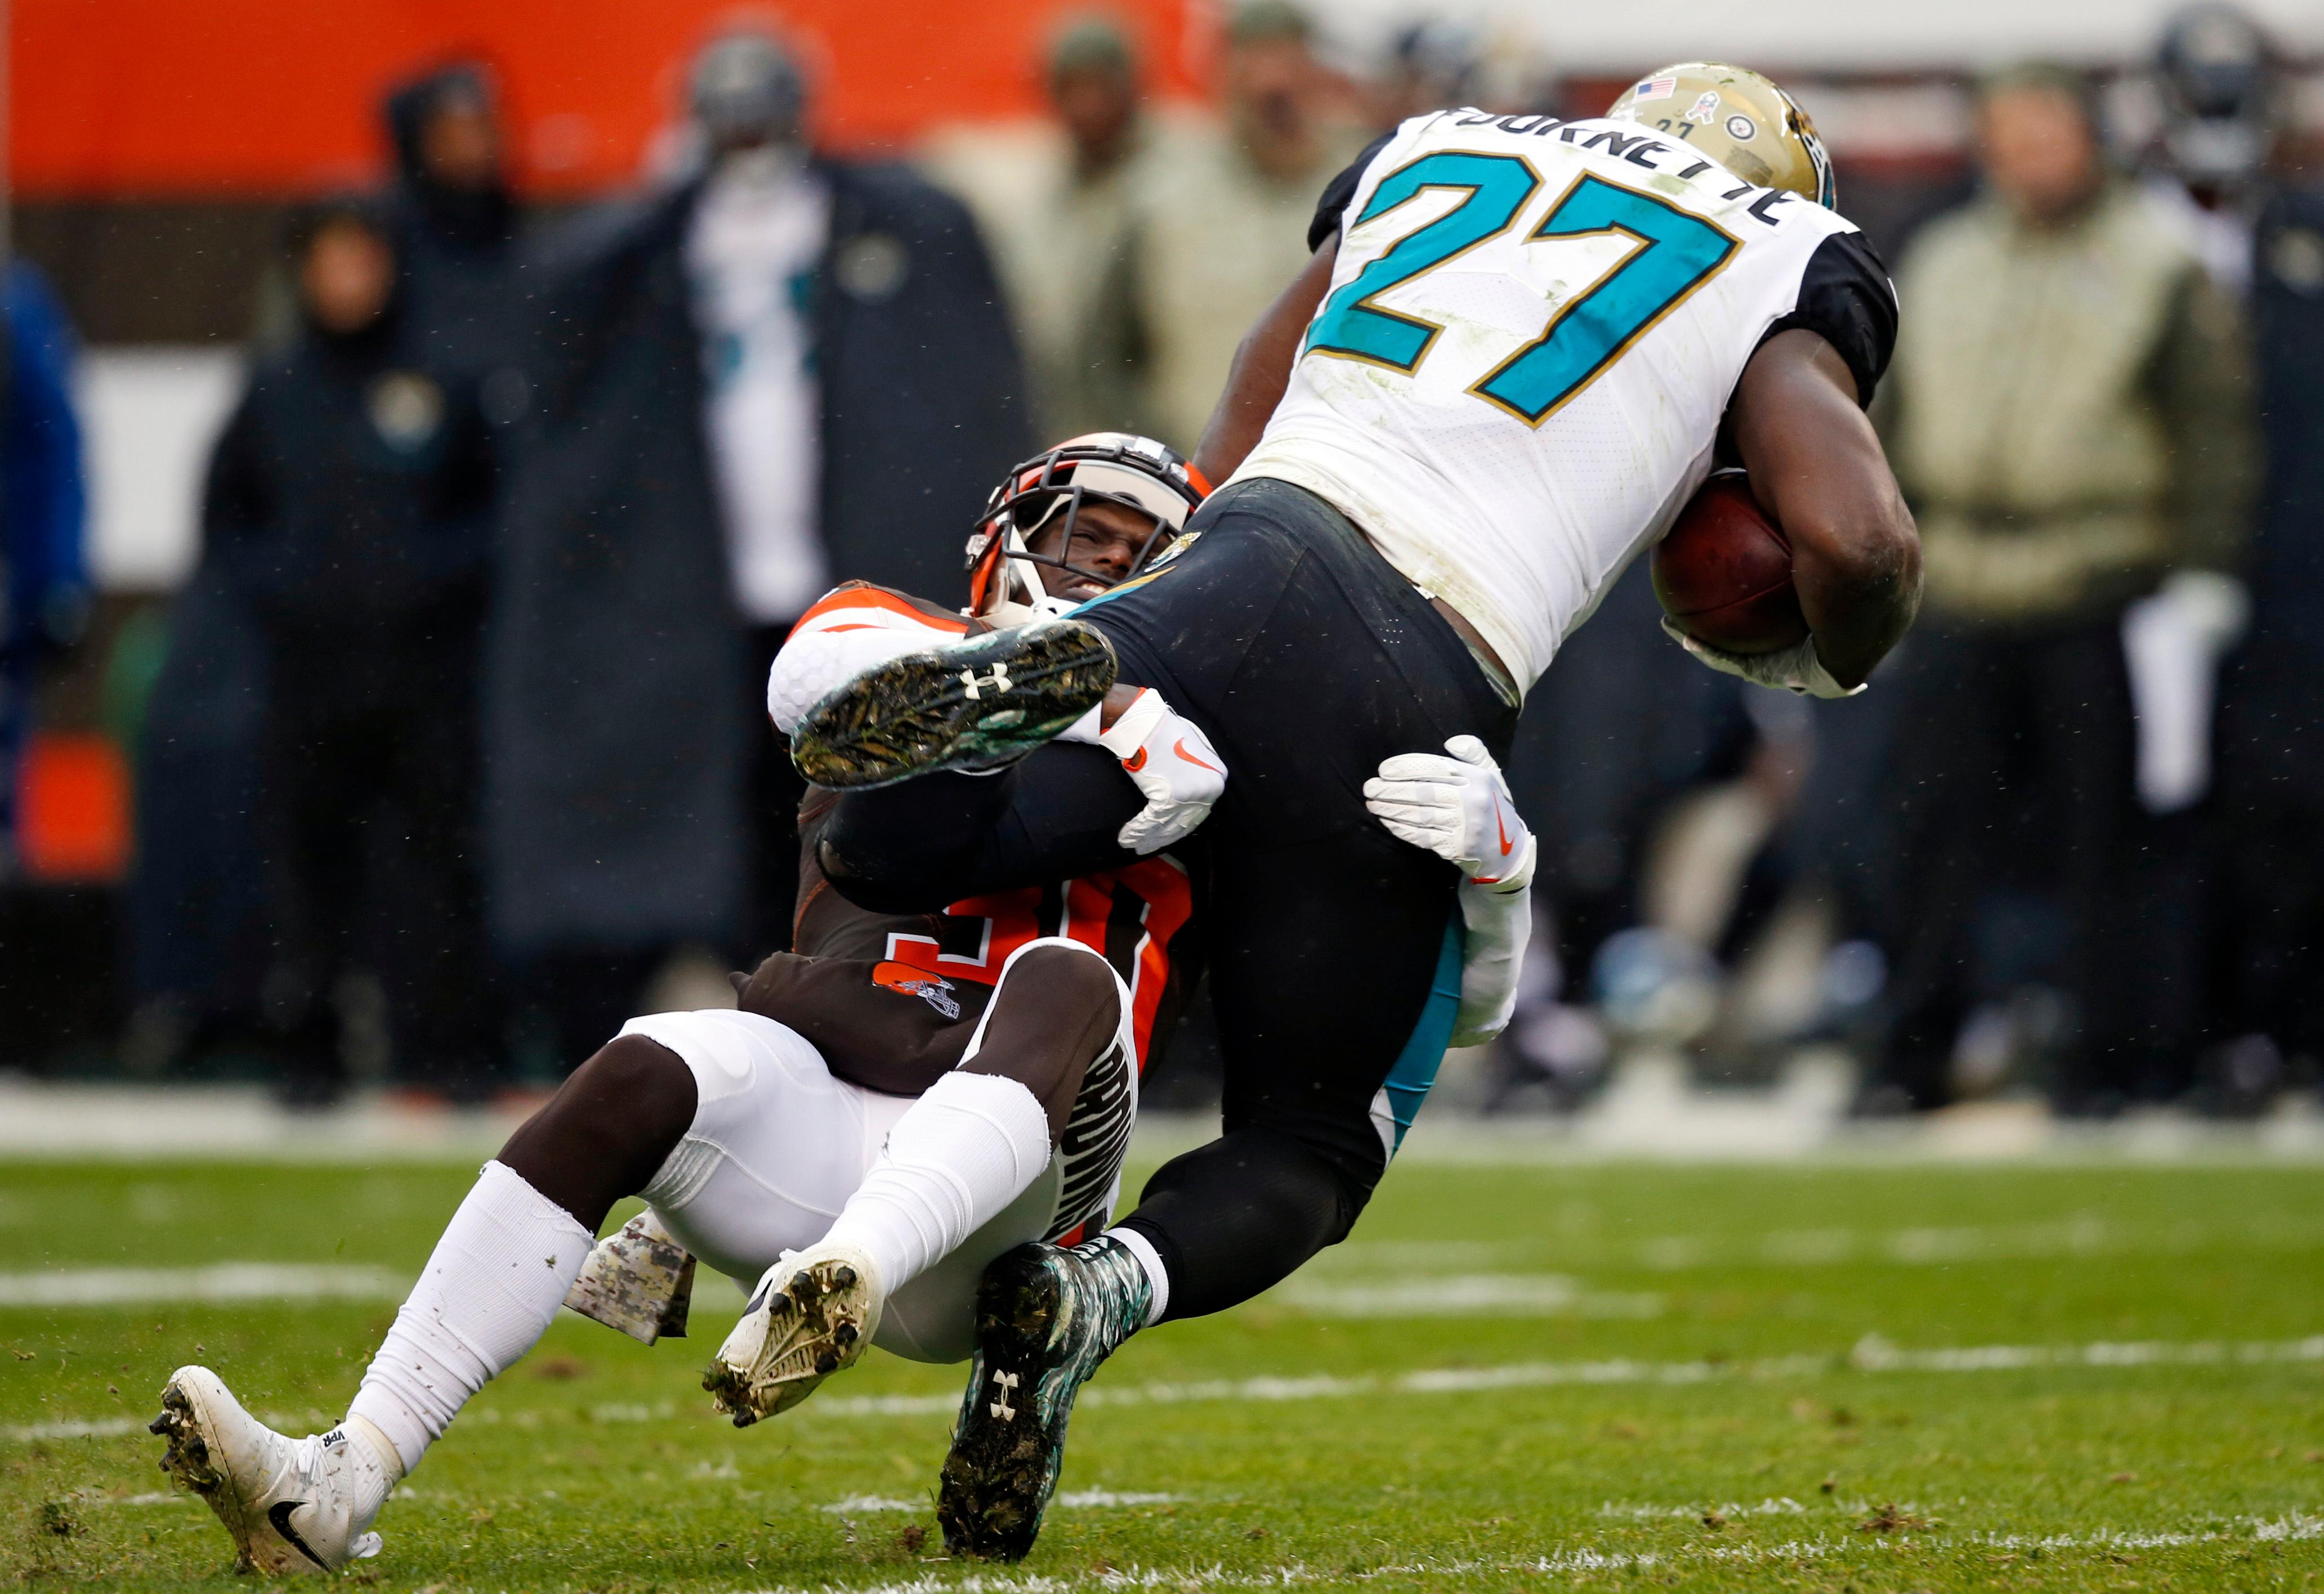 Cleveland Browns defensive back Jason McCourty (30) tackles Jacksonville Jaguars running back Leonard Fournette (27) in the first half of an NFL football game, Sunday, Nov. 19, 2017, in Cleveland. (AP Photo/Ron Schwane)